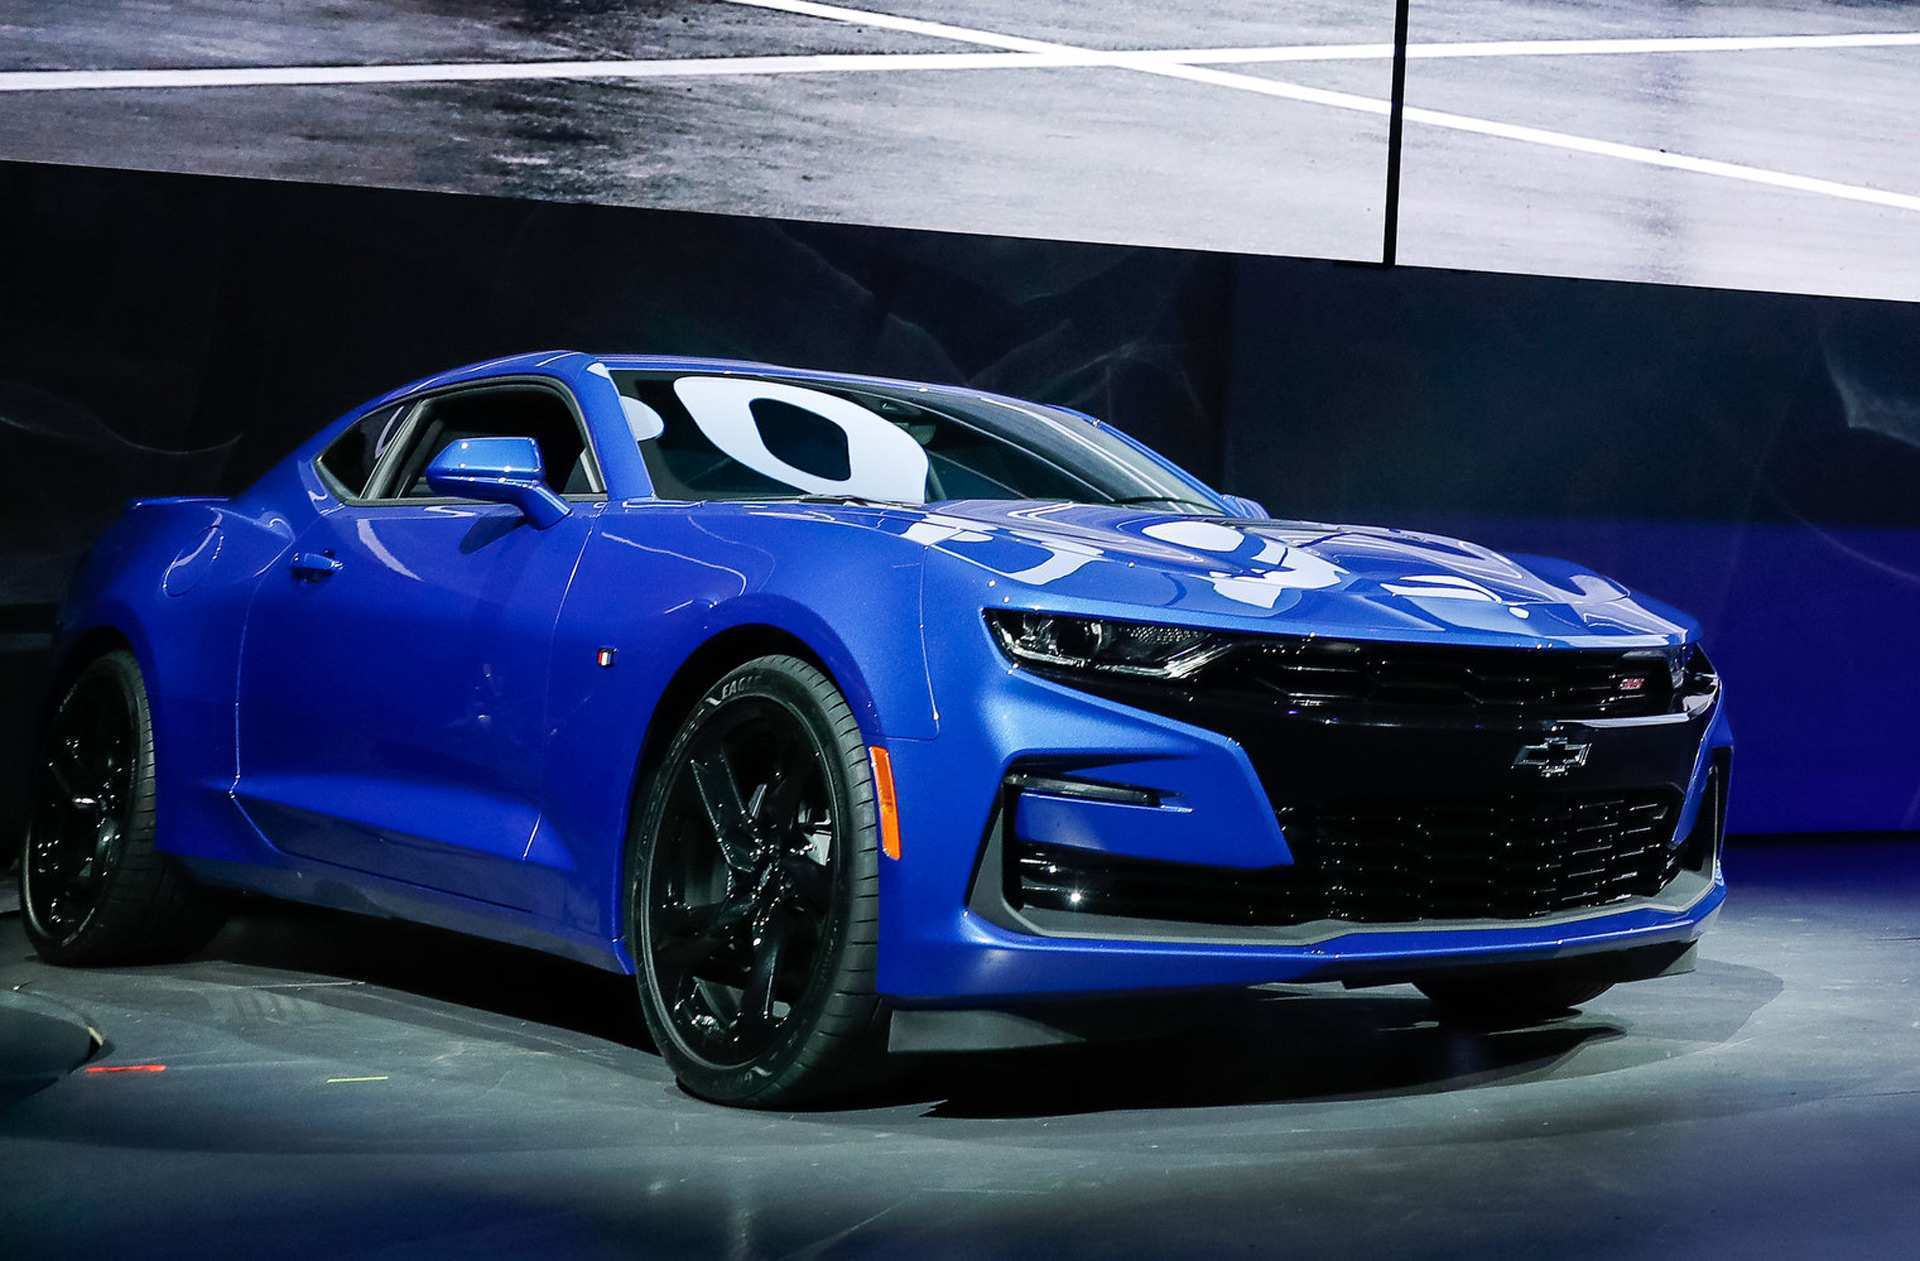 35 New 2019 Chevy Camaro Images